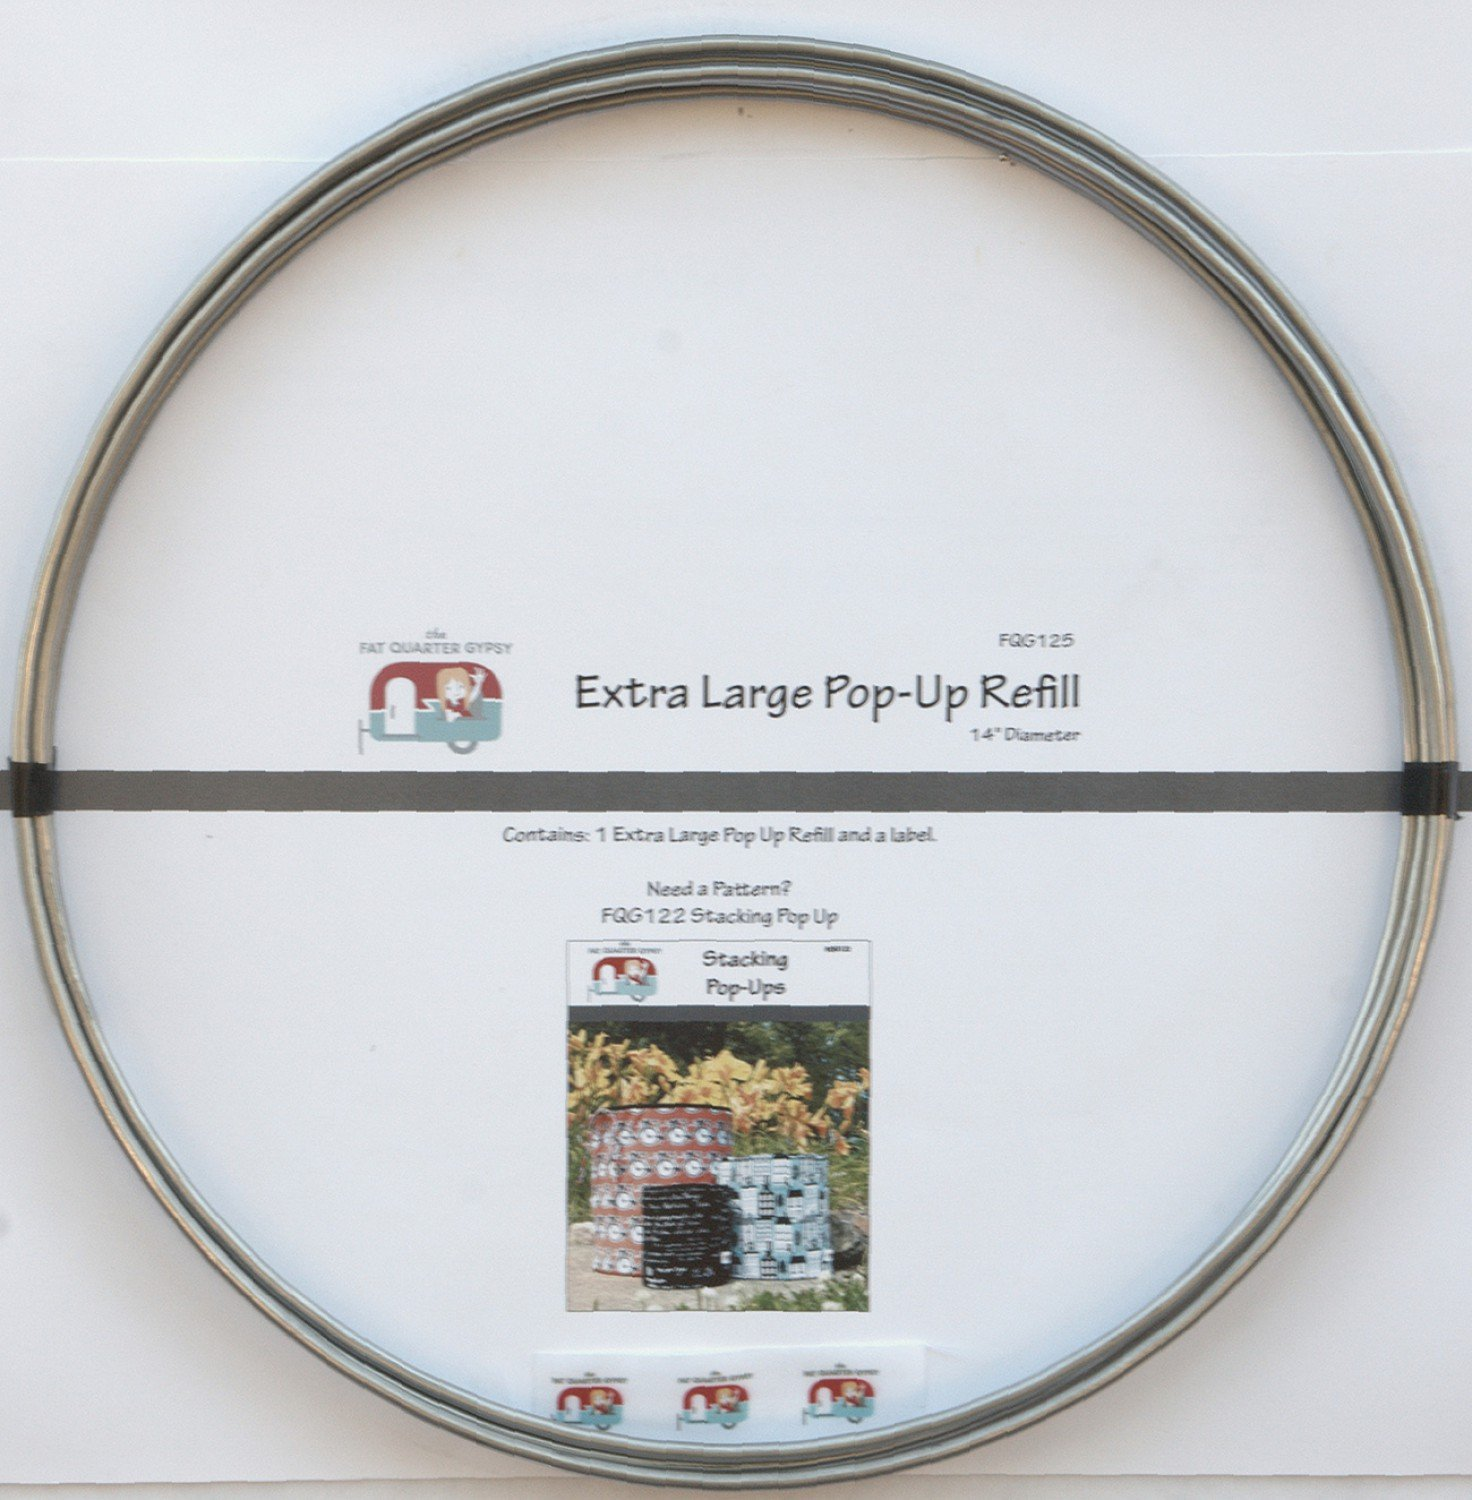 Extra Large Pop-Up Refill Spring